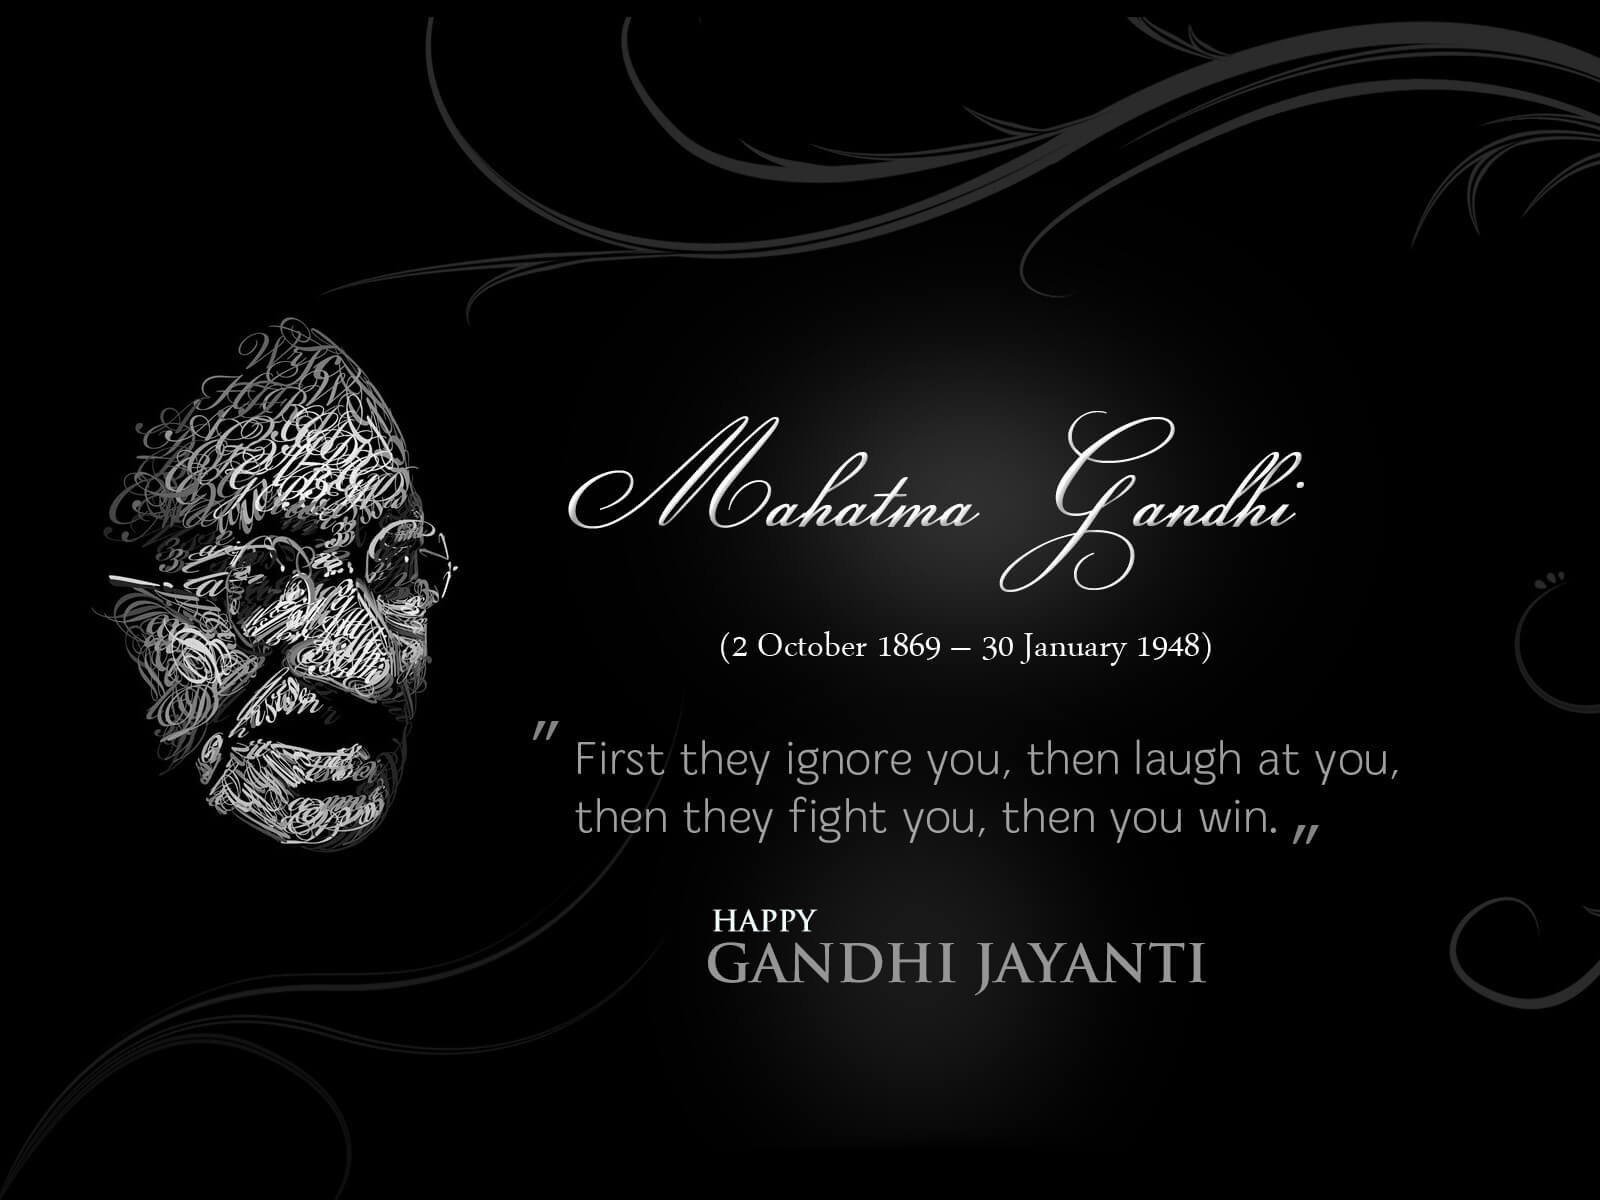 gandhi jayanti october 2 hd success quotes wallpaper